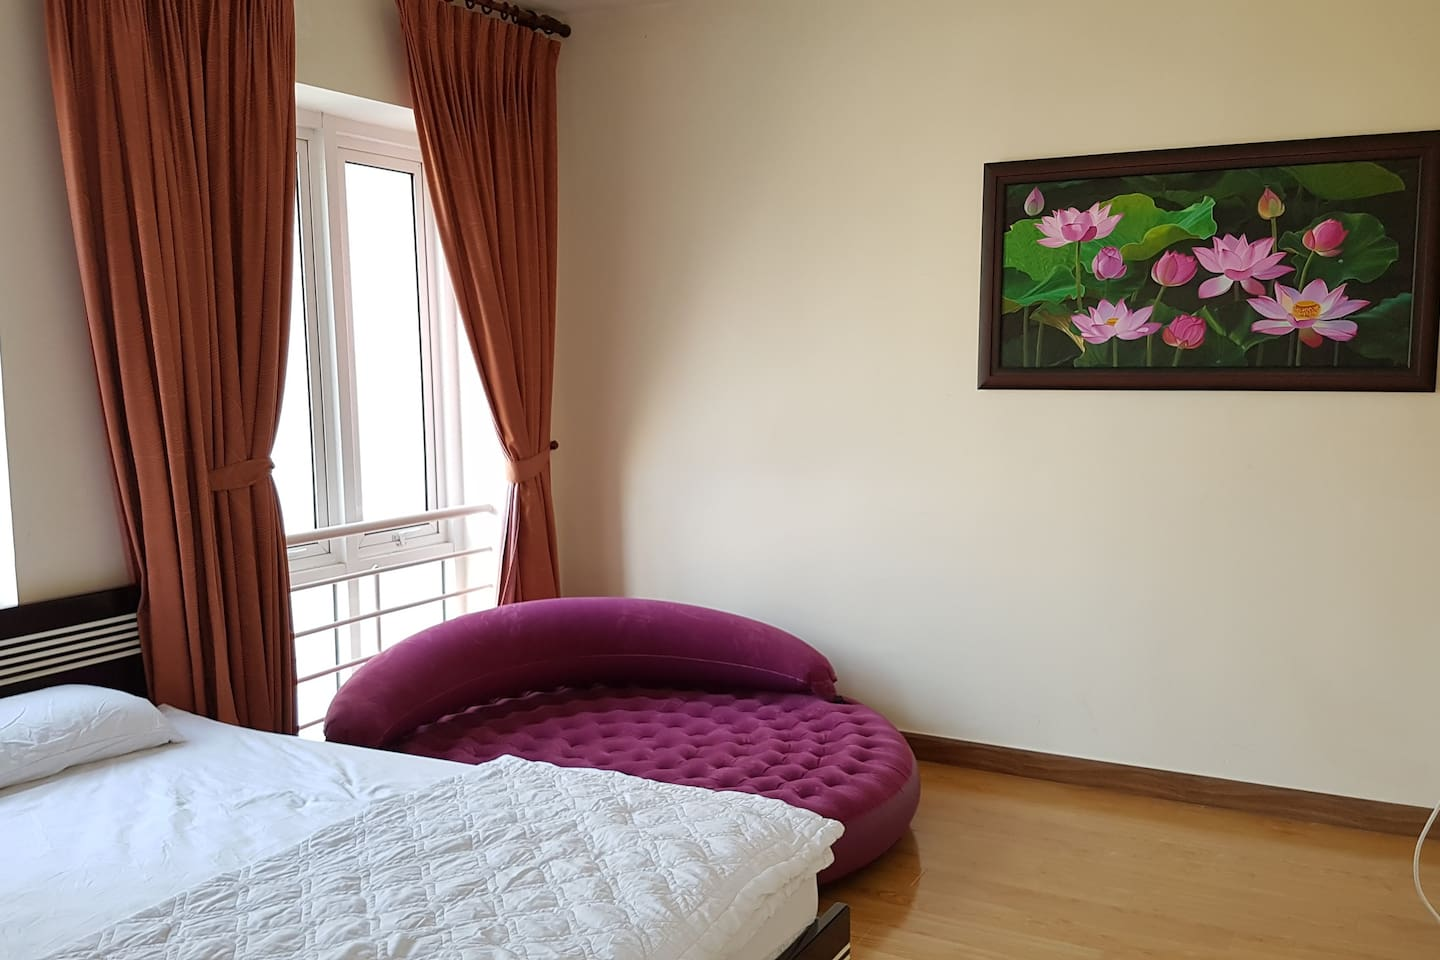 stunning 4 bedrooms penthouse apartments for rent in ho chi stunning 4 bedrooms penthouse apartments for rent in ho chi minh city ho chi minh vietnam